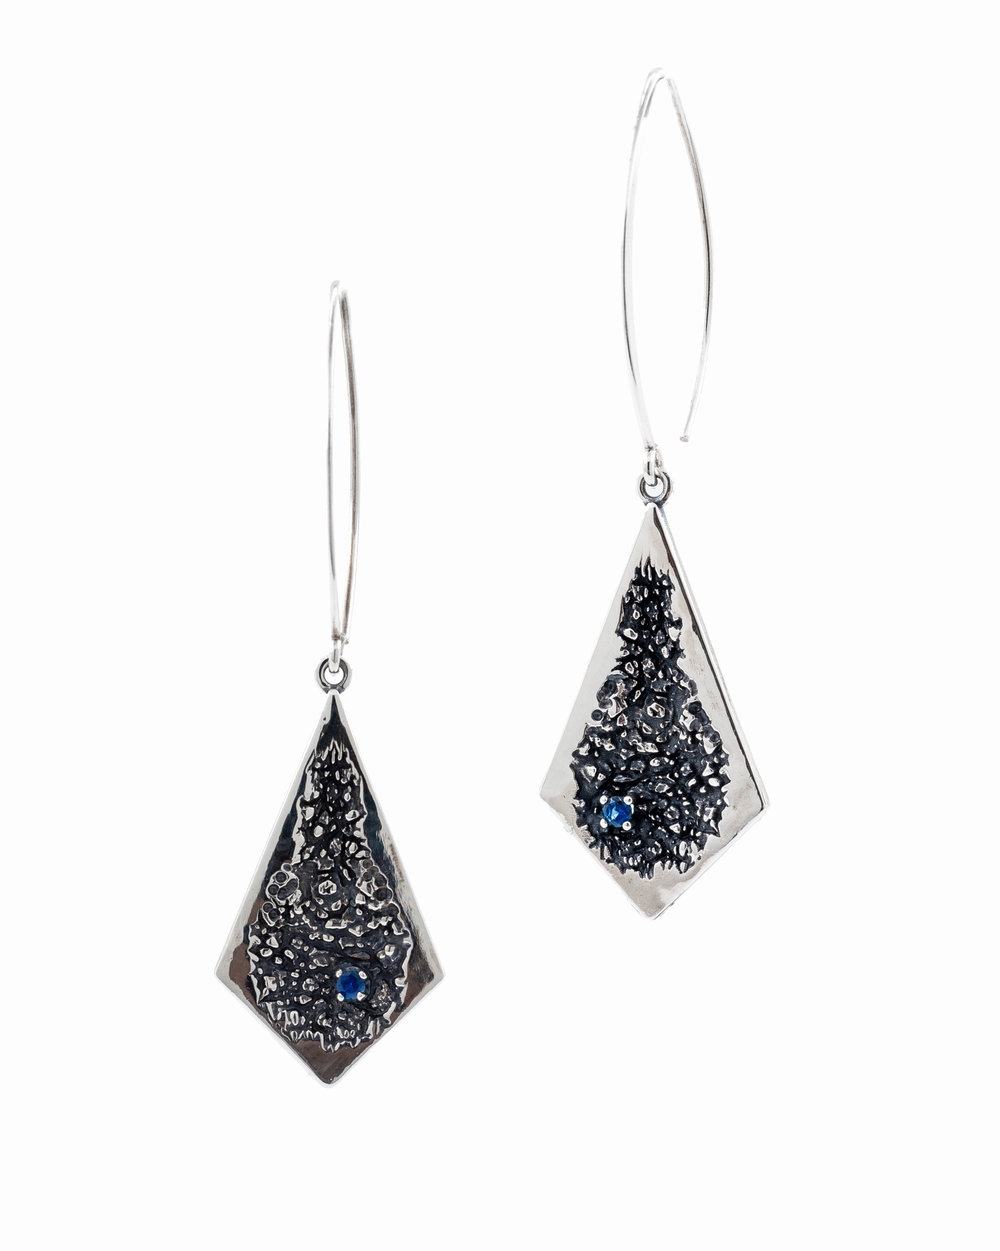 Absence Earrings : Sterling silver, Australian blue sapphire, patina.